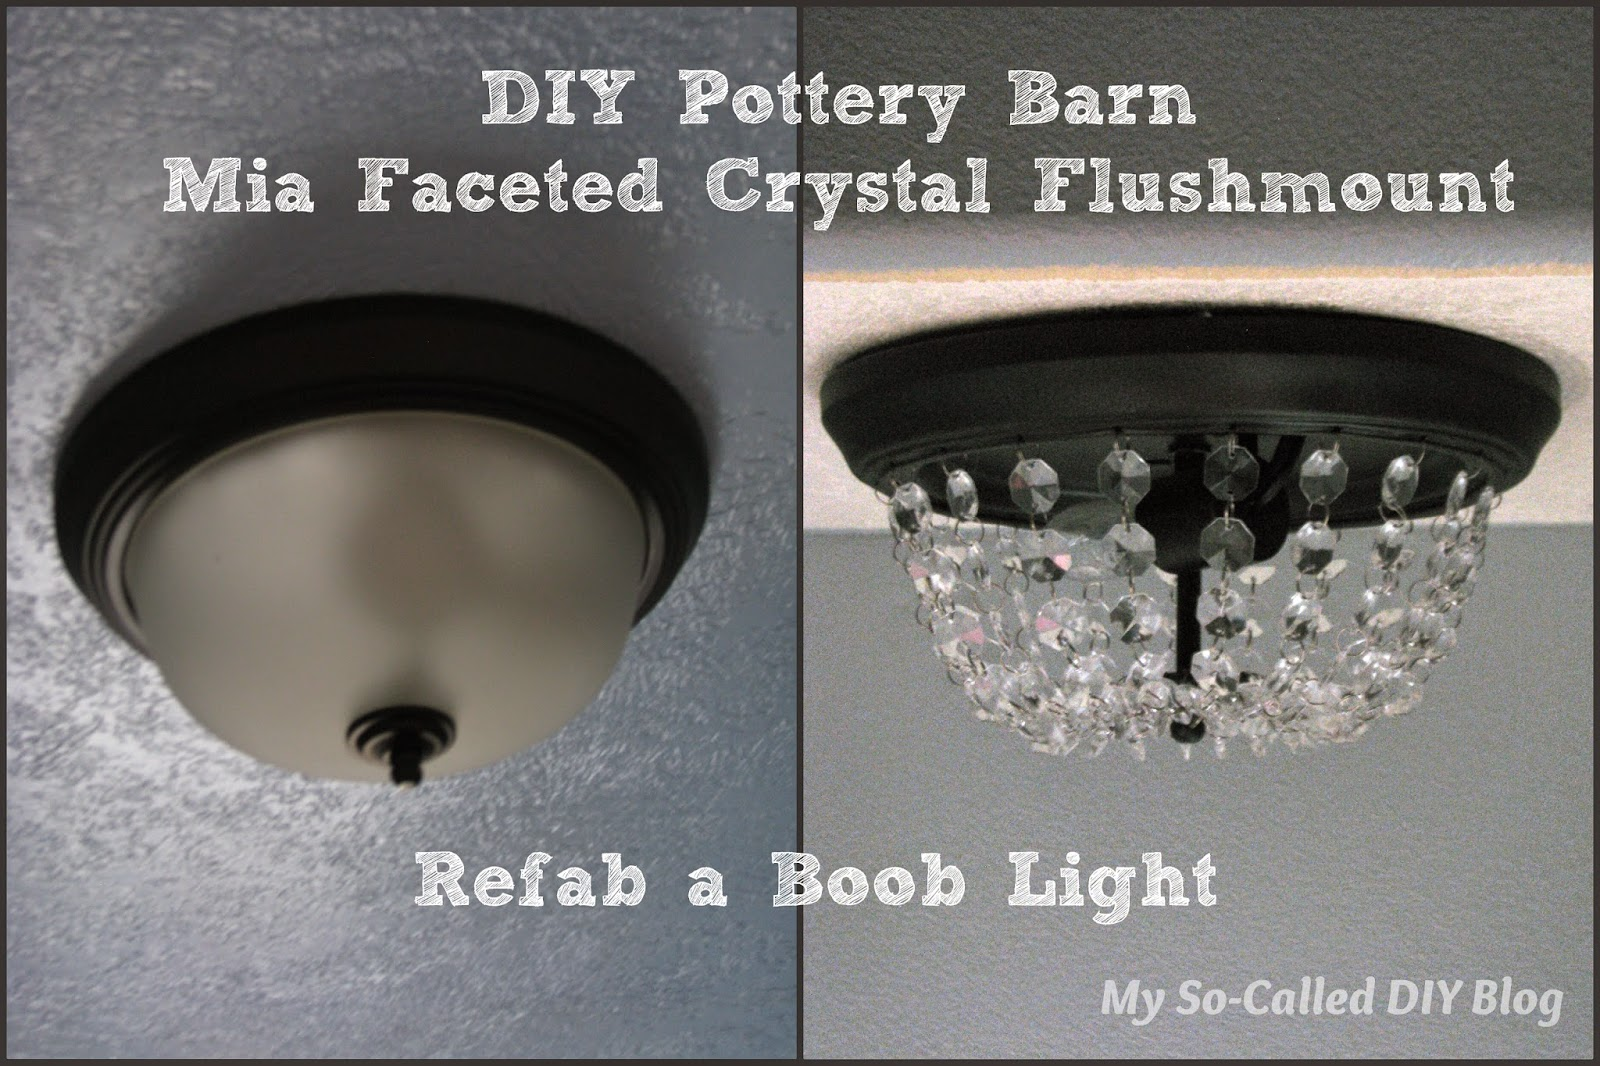 http://www.mysocalleddiyblog.com/2014/04/diy-pottery-barn-mia-faceted-crystal.html